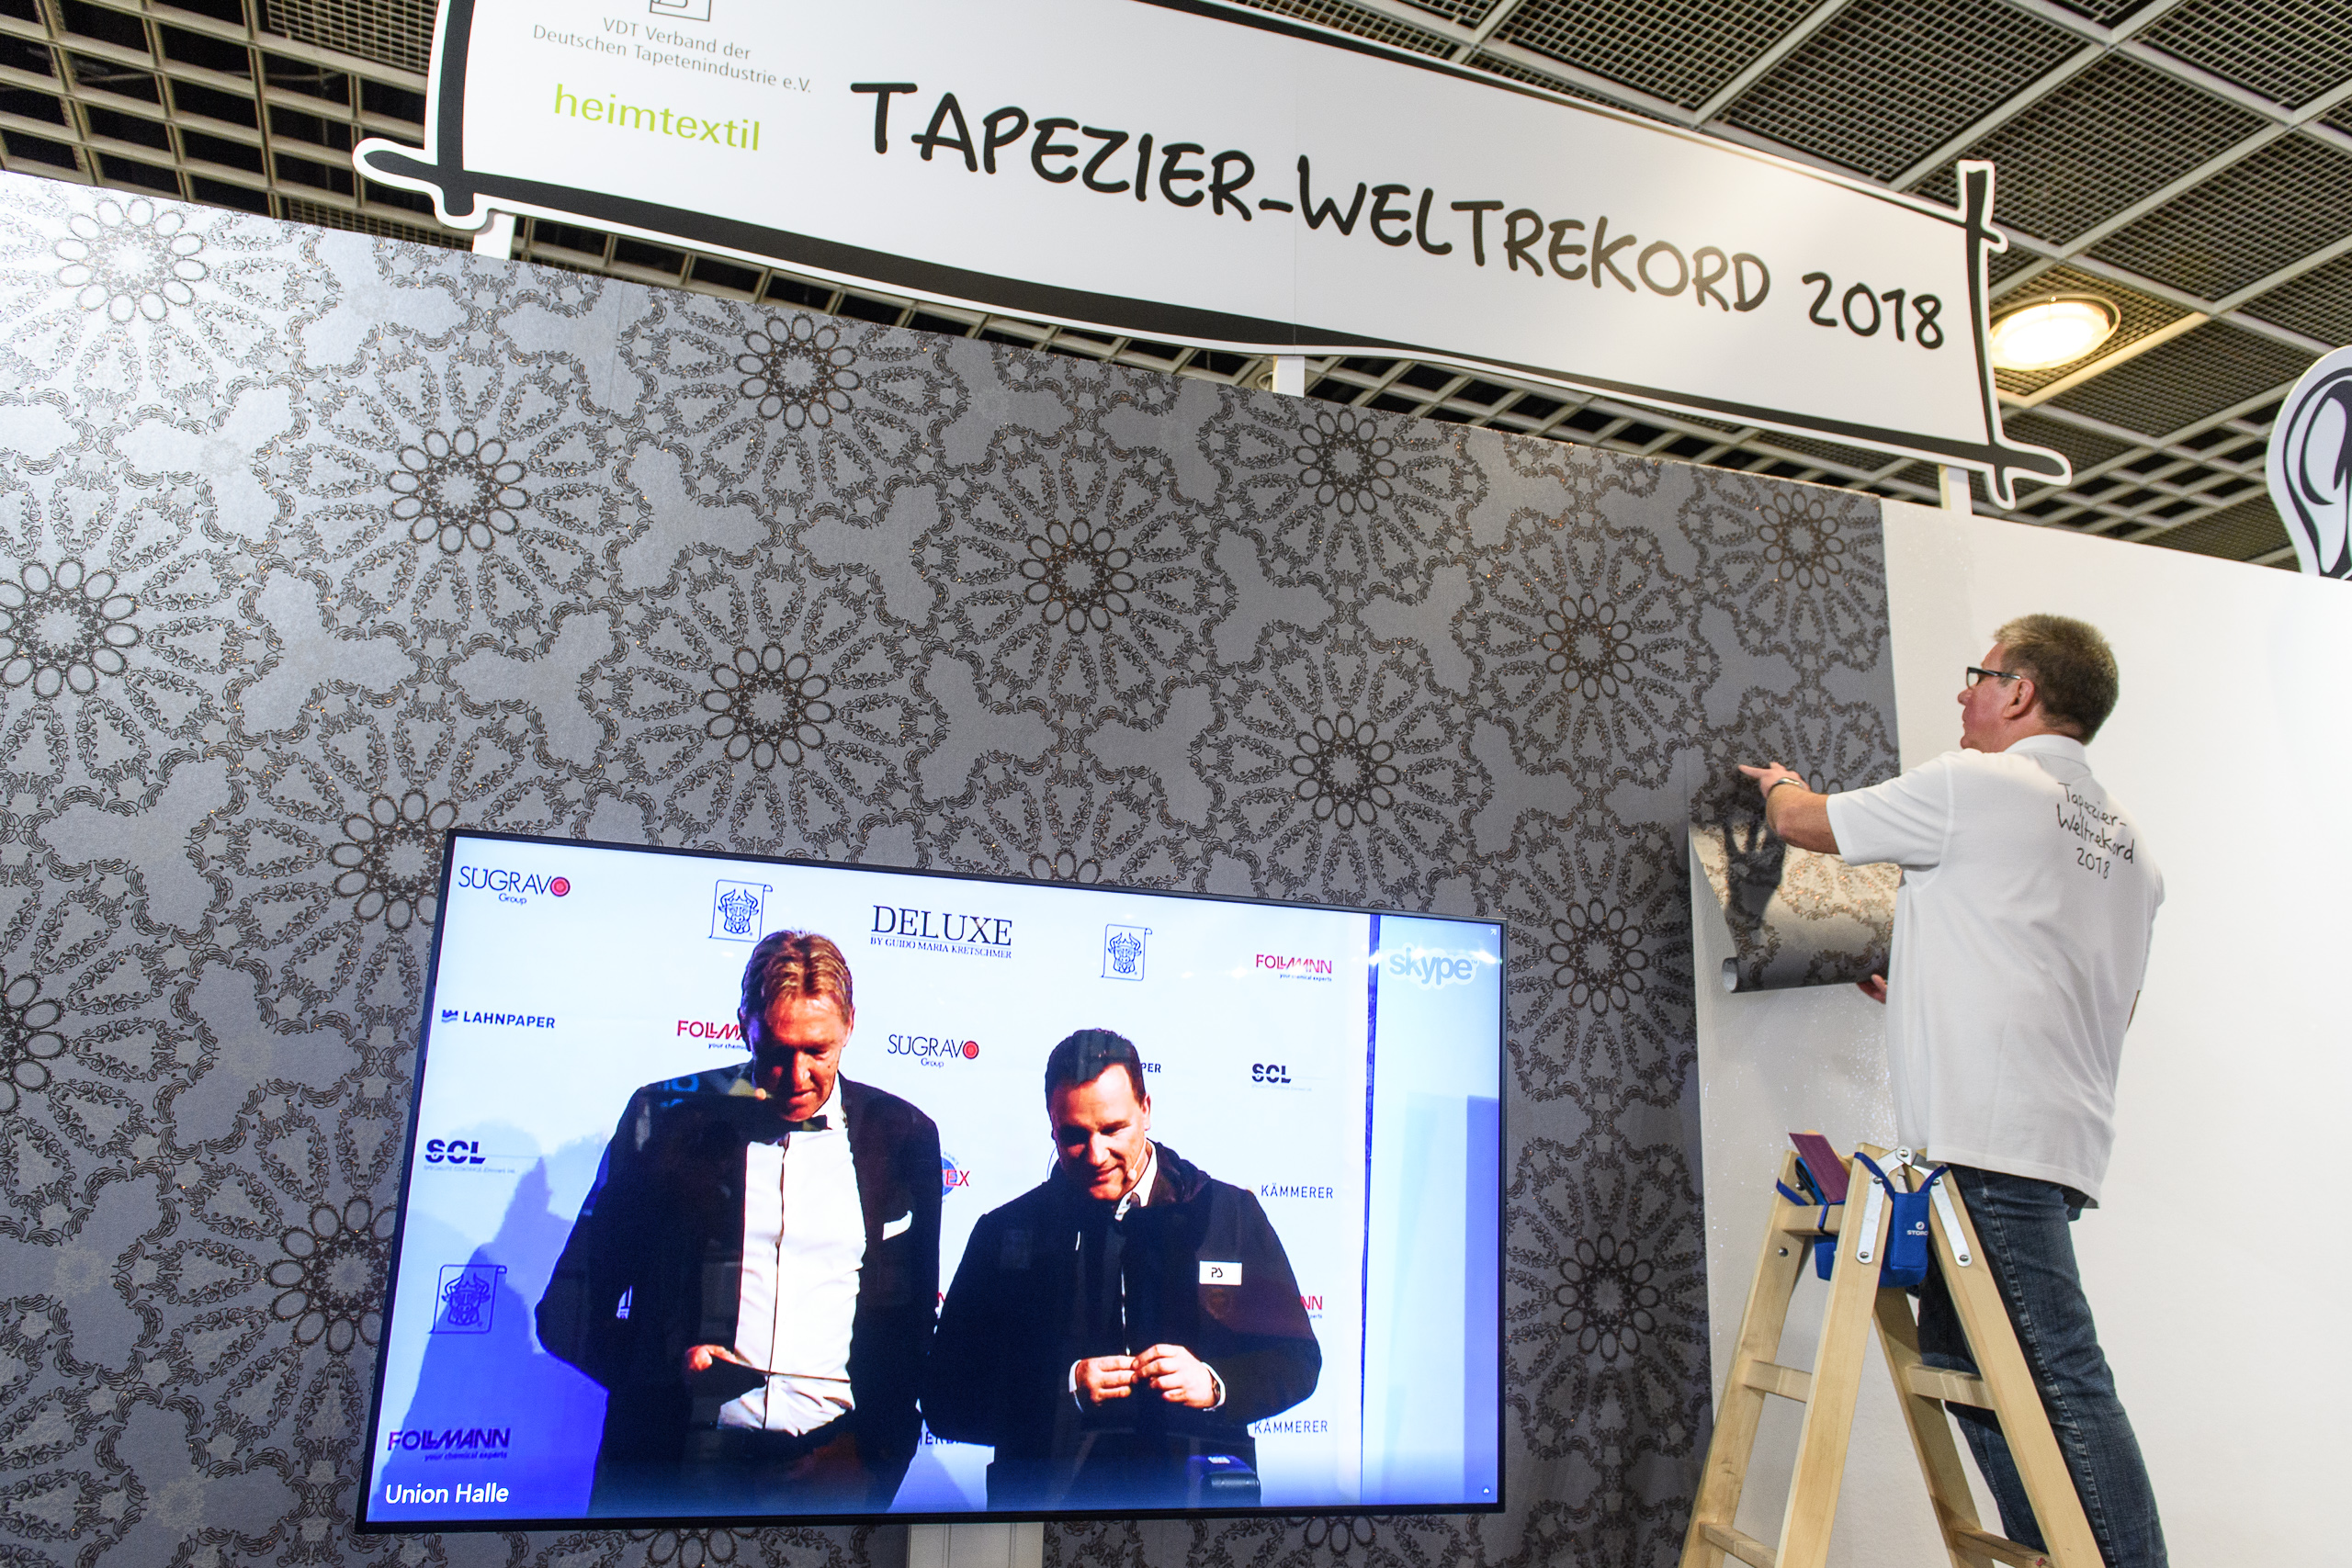 heimtextil-paperhanging-world record – Designer Guido Maria Kretschmer live from Frankfurt Union Hall